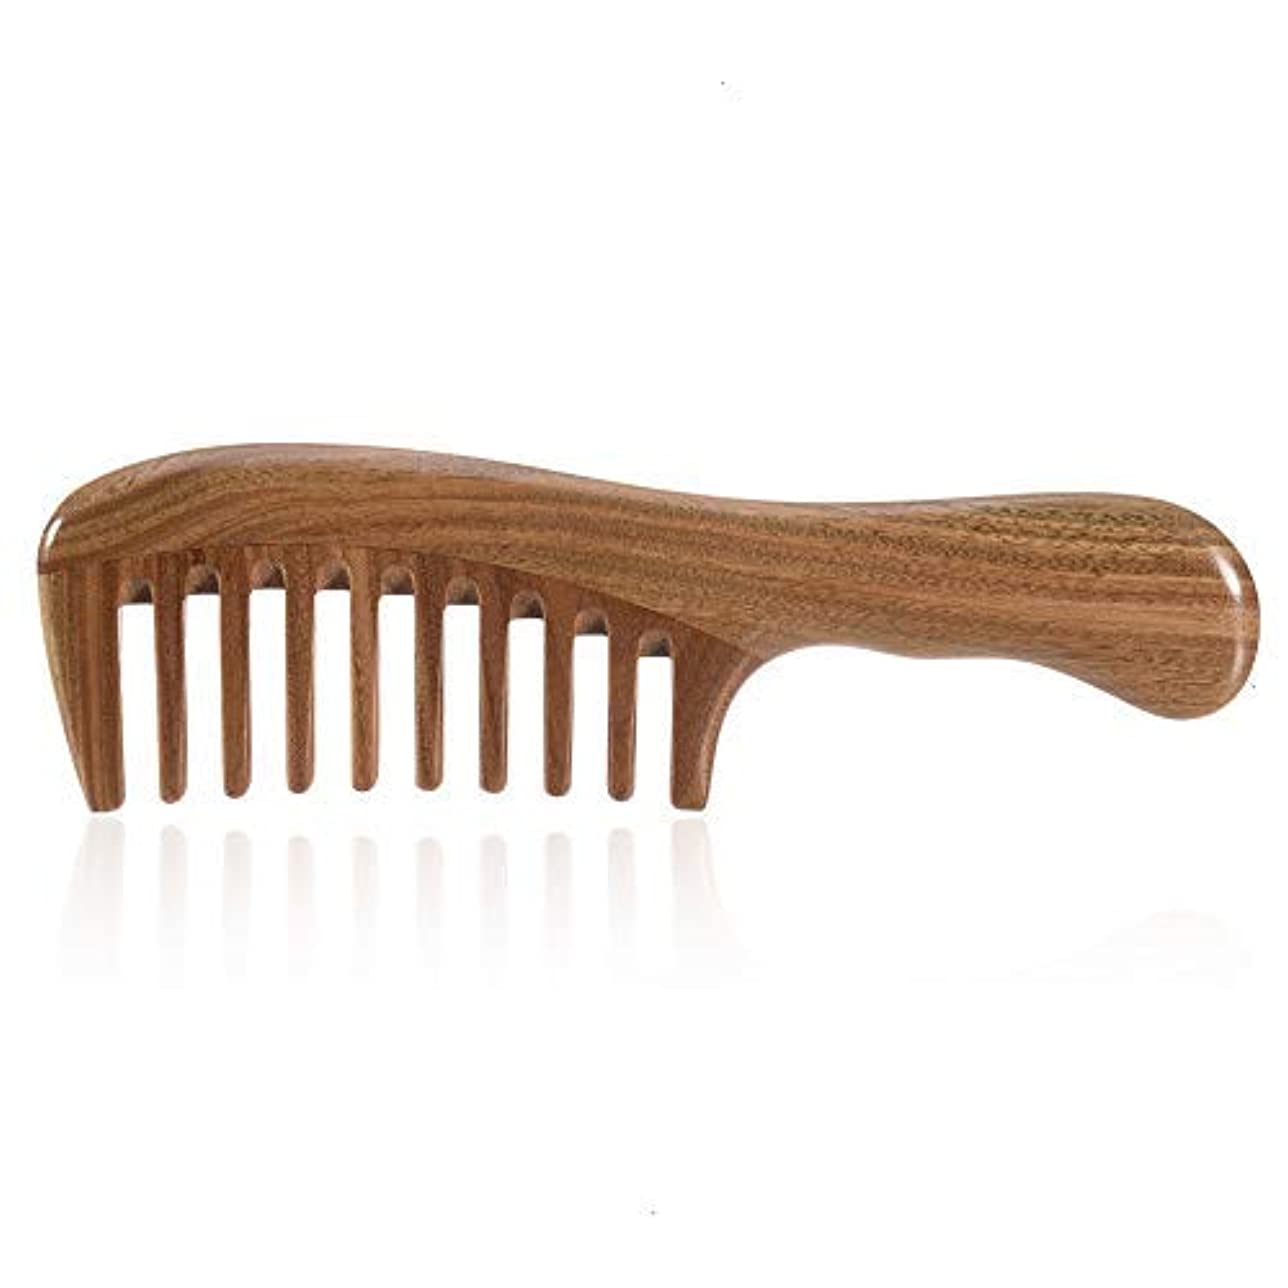 Feeko Wooden Comb, 1 PC Wide Tooth Detangling Handmade Natural Green Sandalwood Comb Anti-Static Thick Curly Wavy...